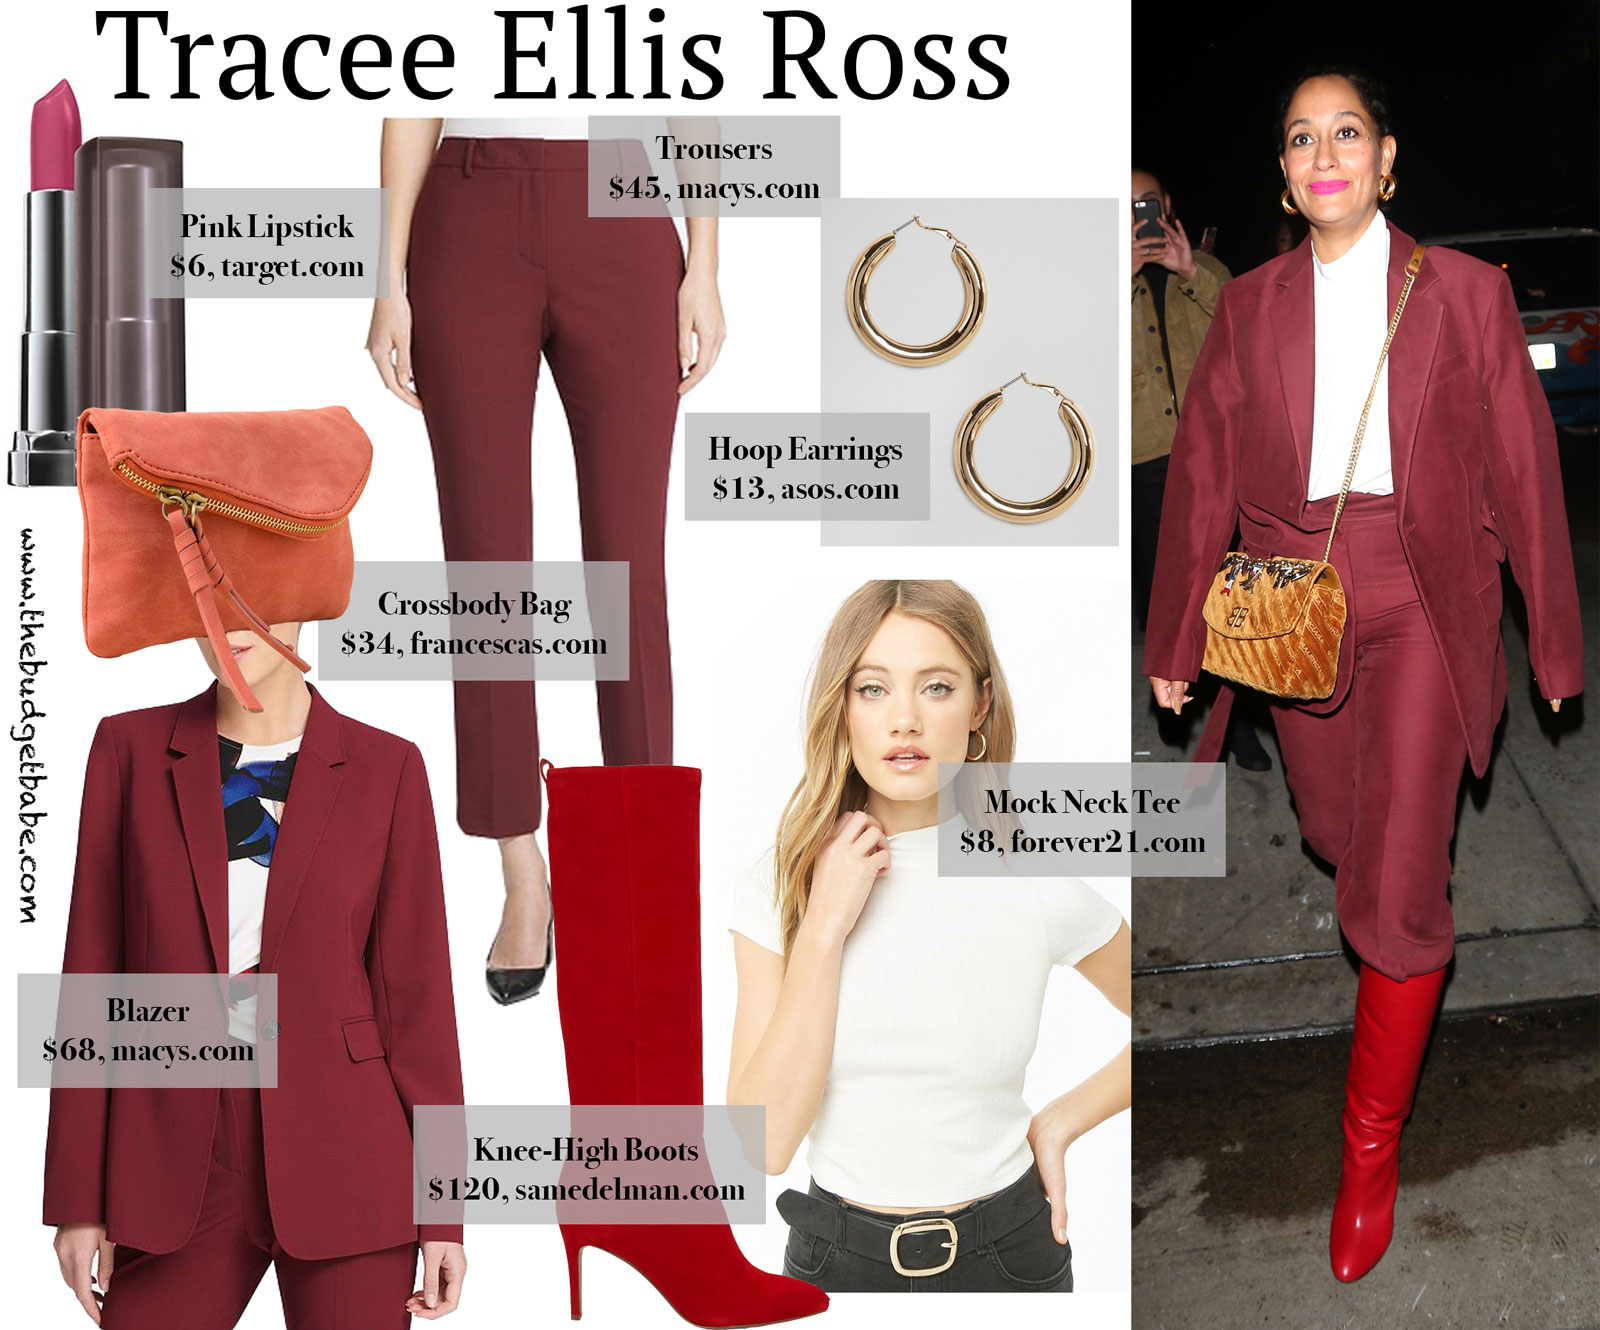 Tracee Ellis Ross Red Pant Suit Look for Less